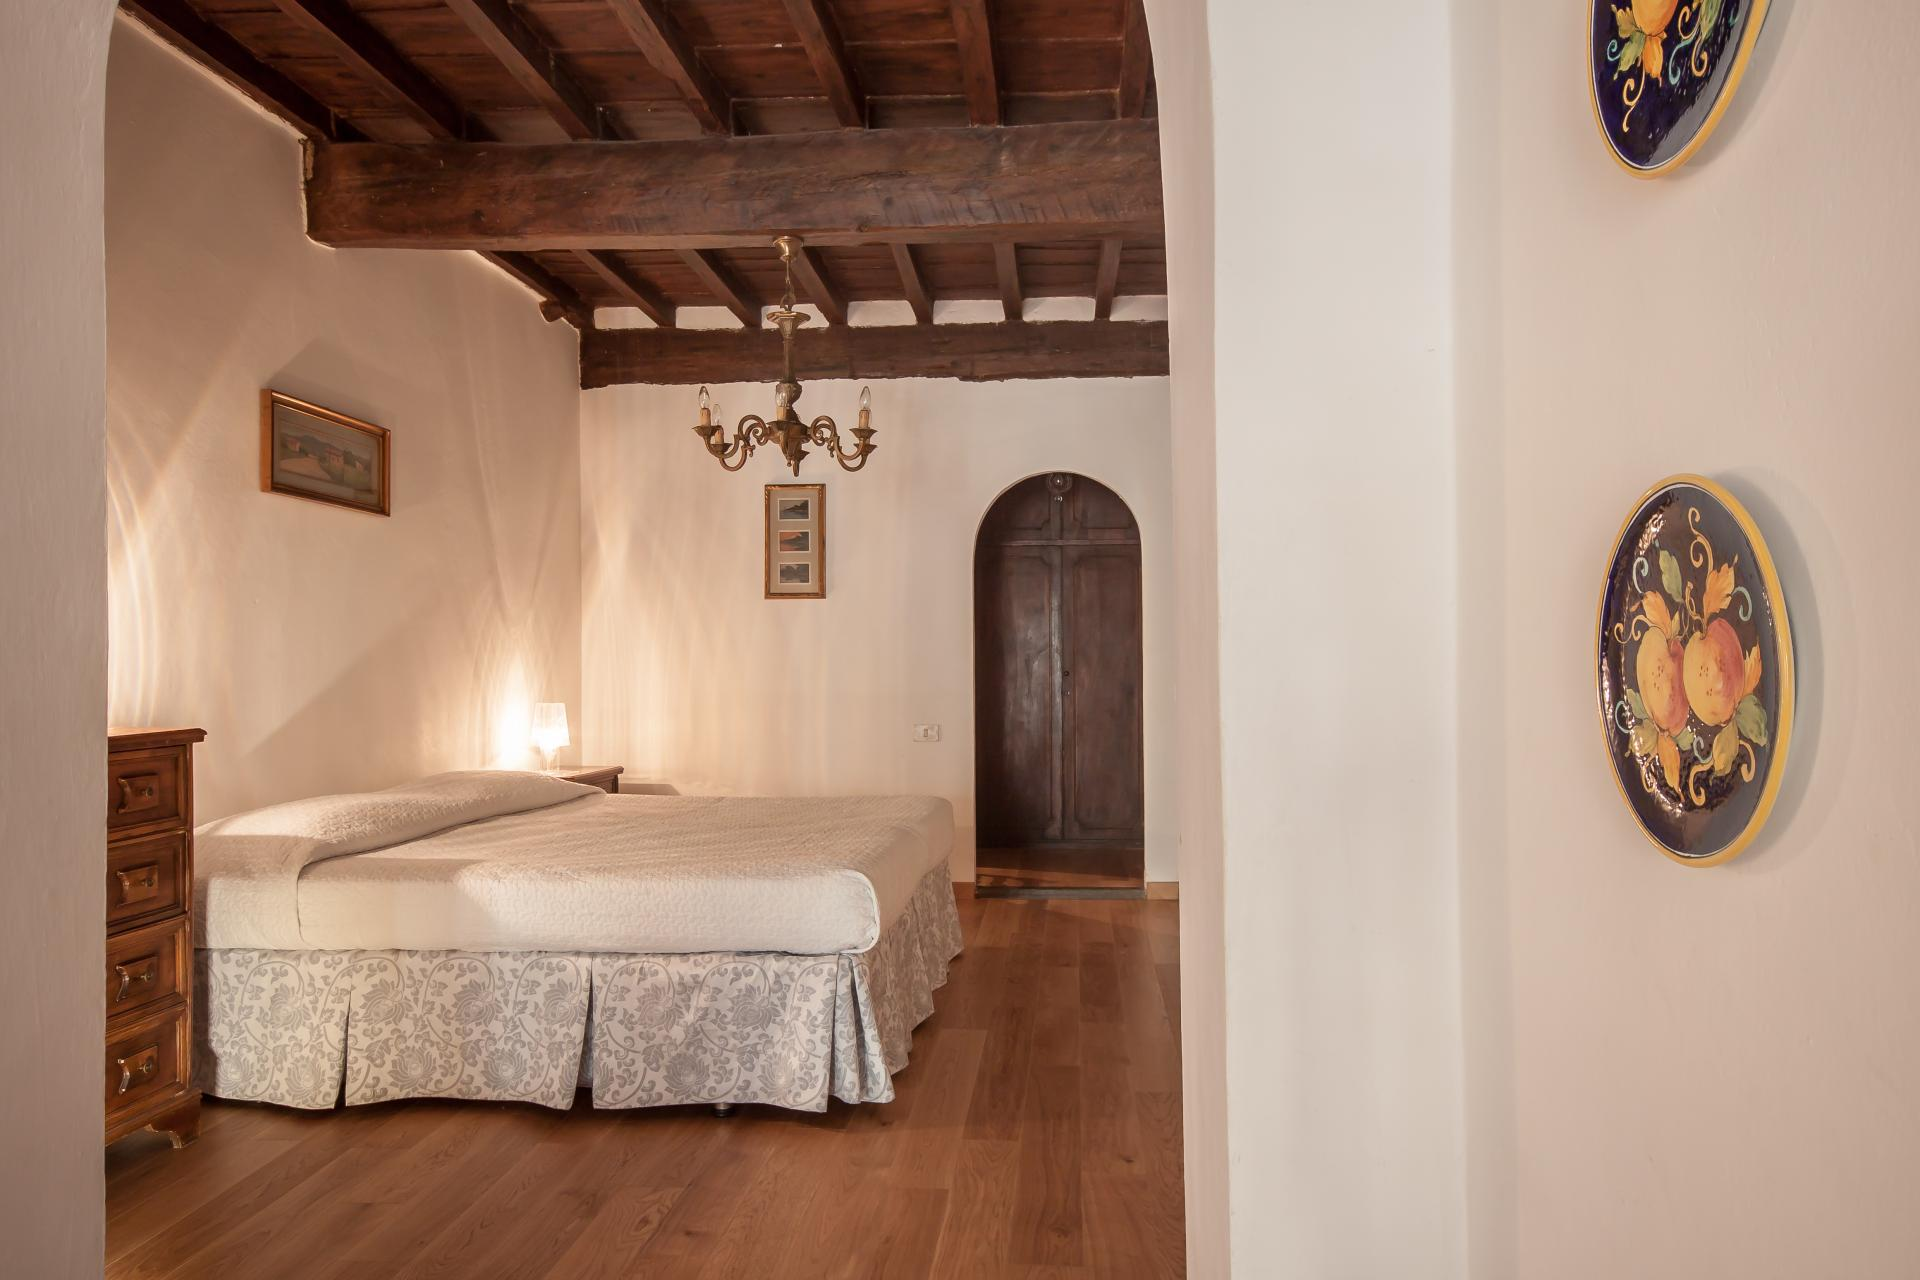 Bed at Borgo Ognissanti Apartment, Centre, Florence